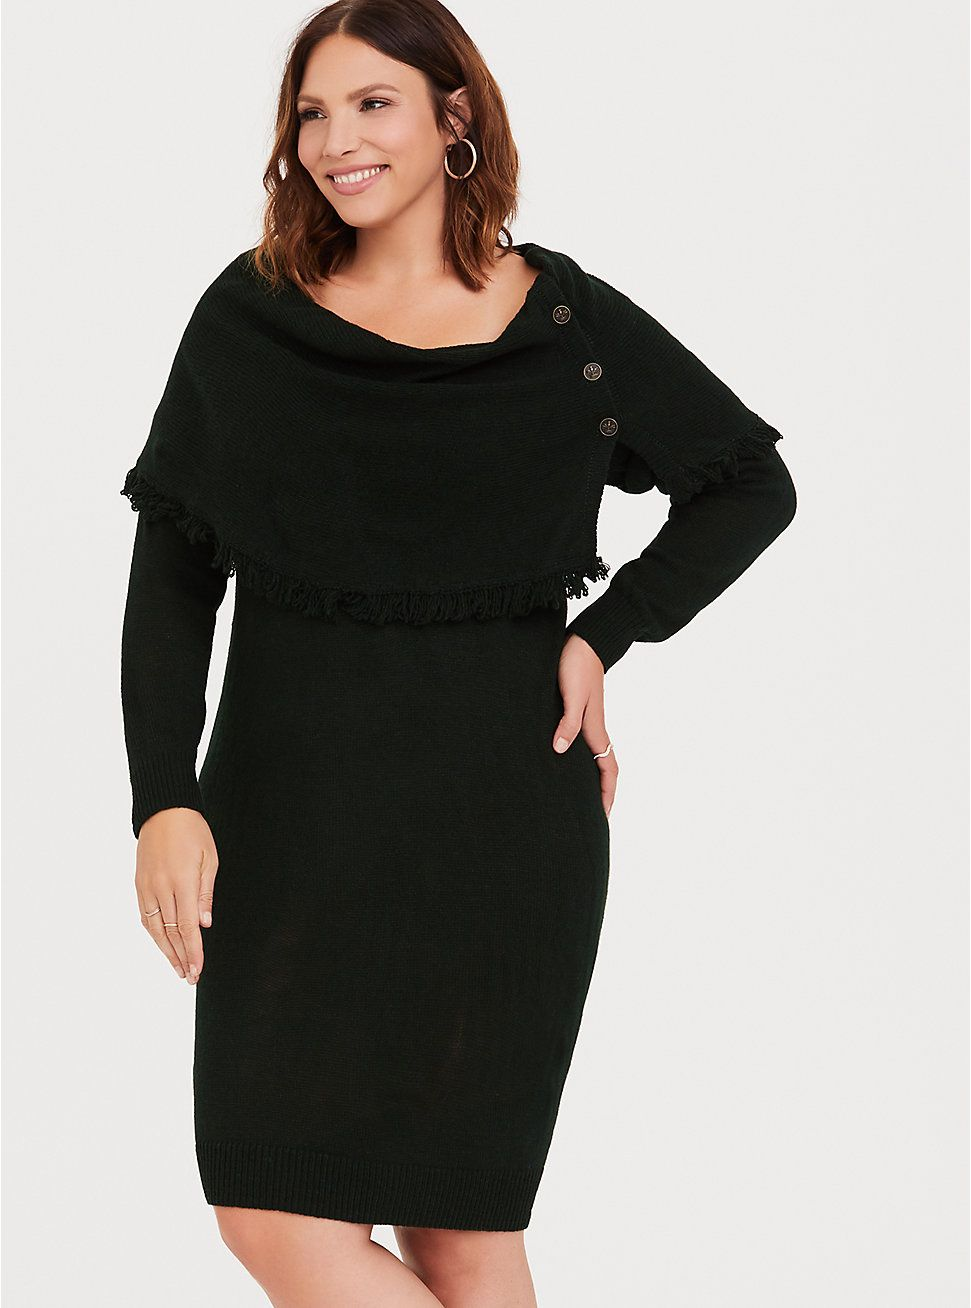 a231992b96 Plus Size Outlander Forest Green Sweater Dress